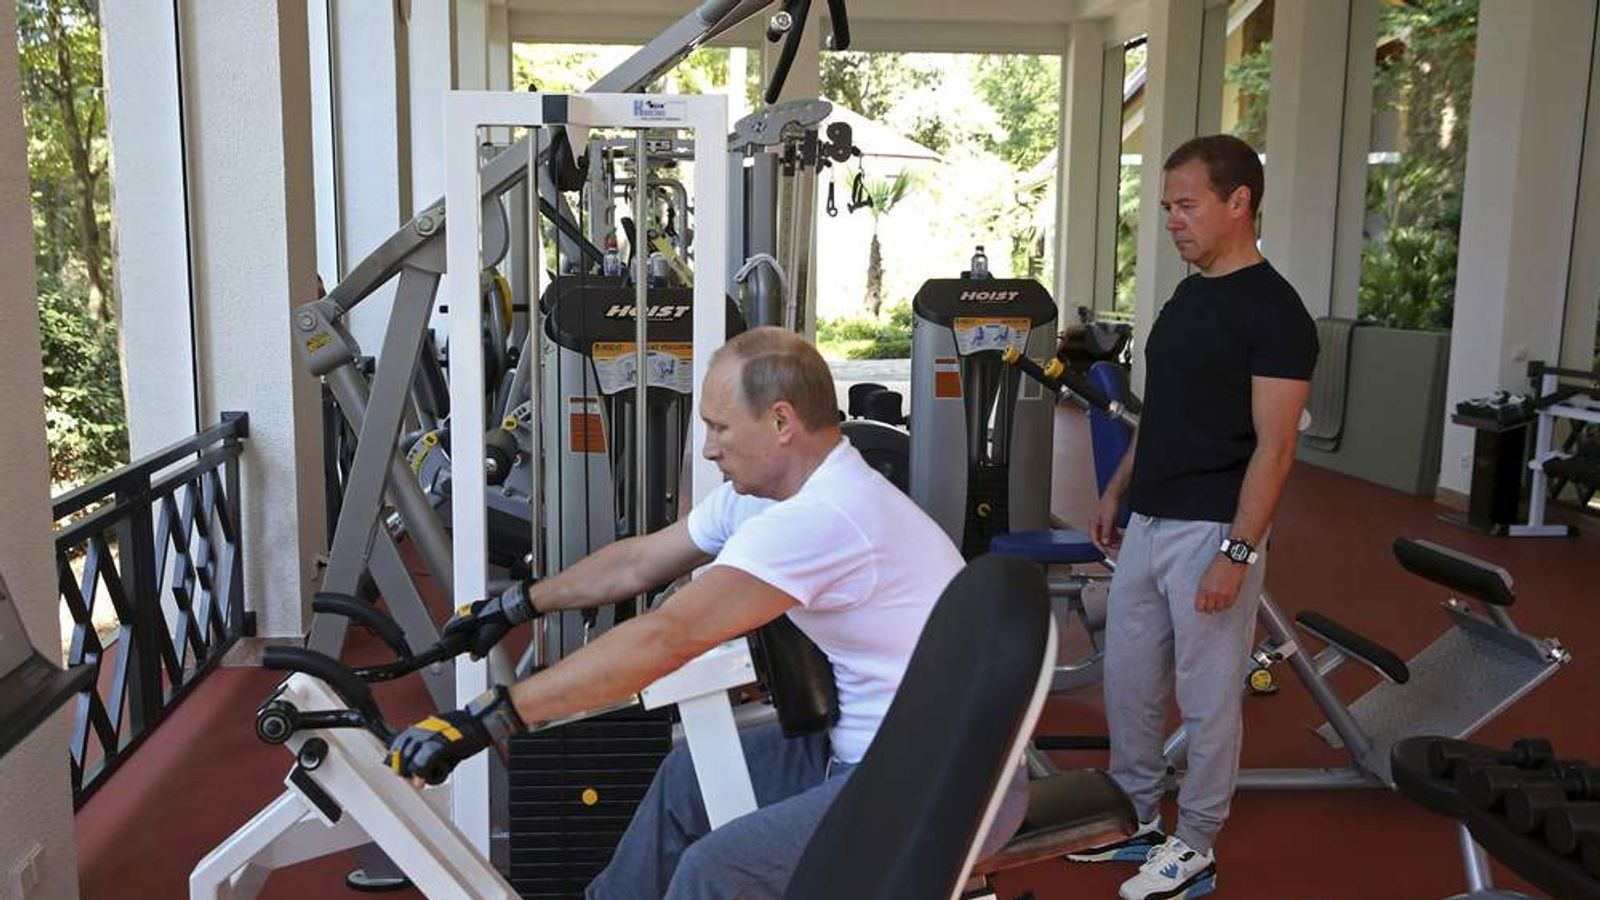 Russian President Putin and Prime Minister Medvedev exercise in a gym at the Bocharov Ruchei state residence in Sochi